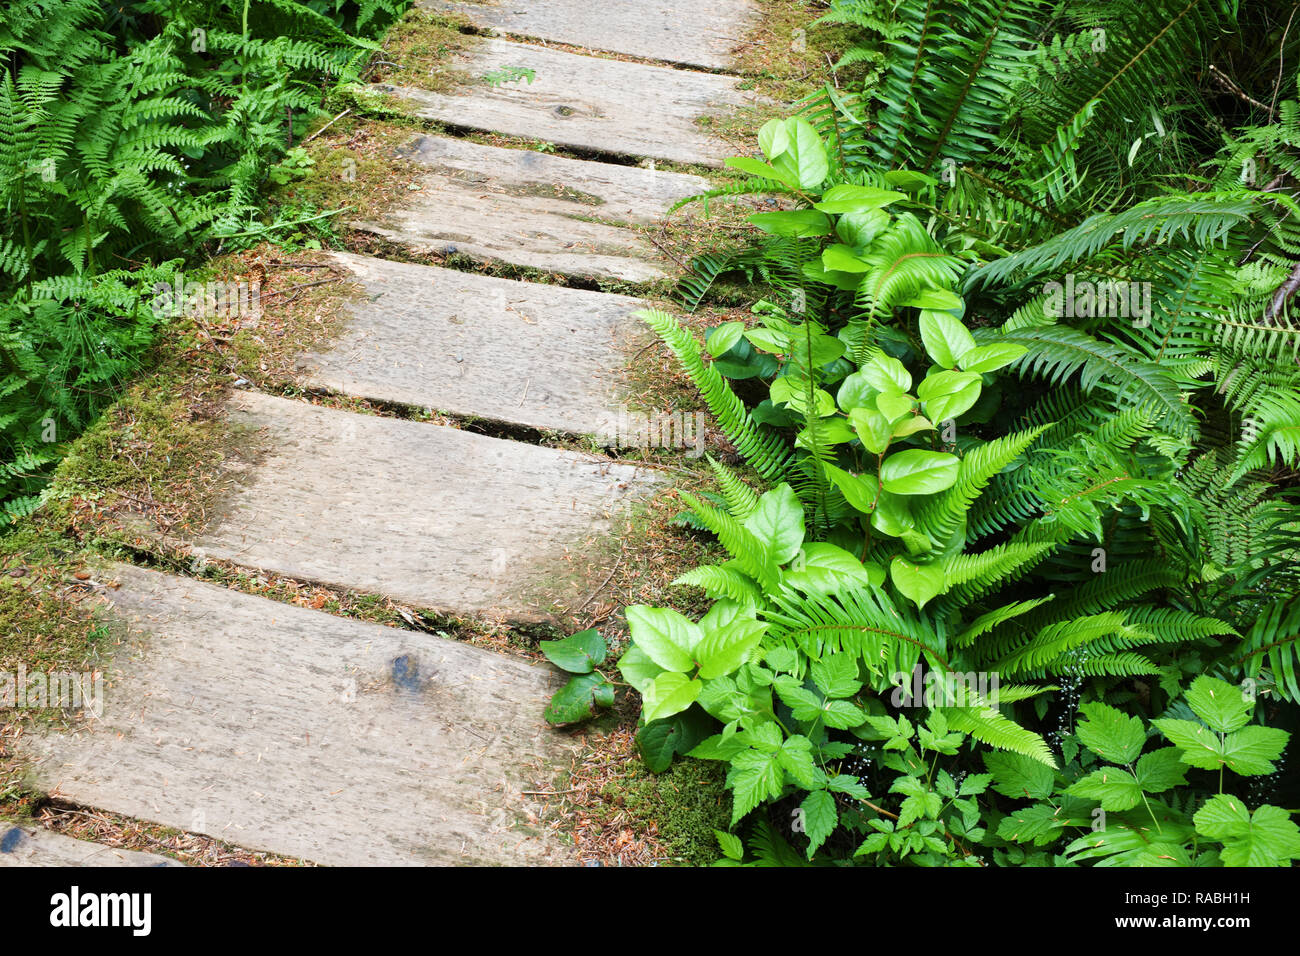 Boardwalk trail through old growth temperate rain forest, Sand Point Trail, Olympic National Park, Olympic Peninsula, Clallam County, Washington, USA Stock Photo